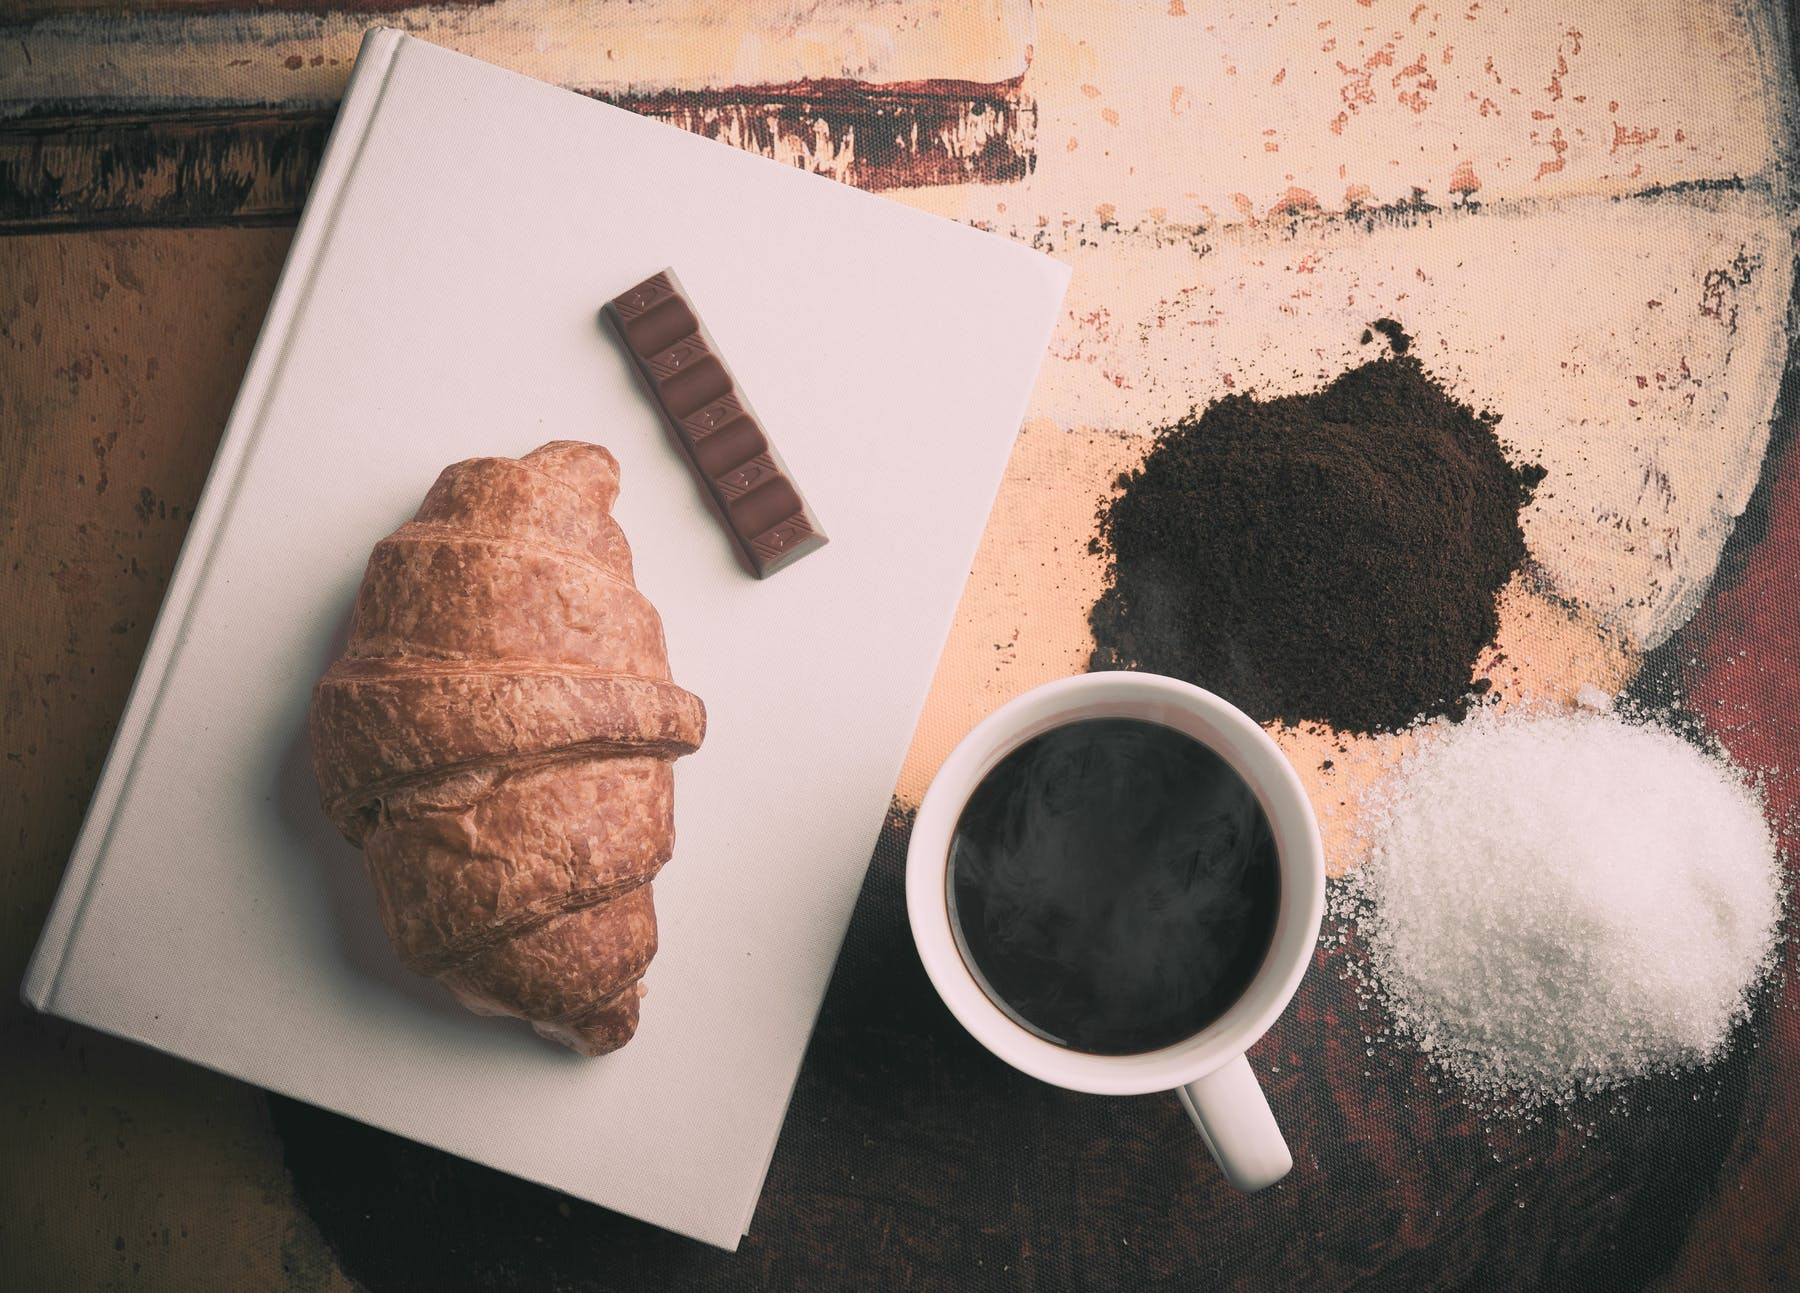 Cup of Coffee with Bread and Chocolate